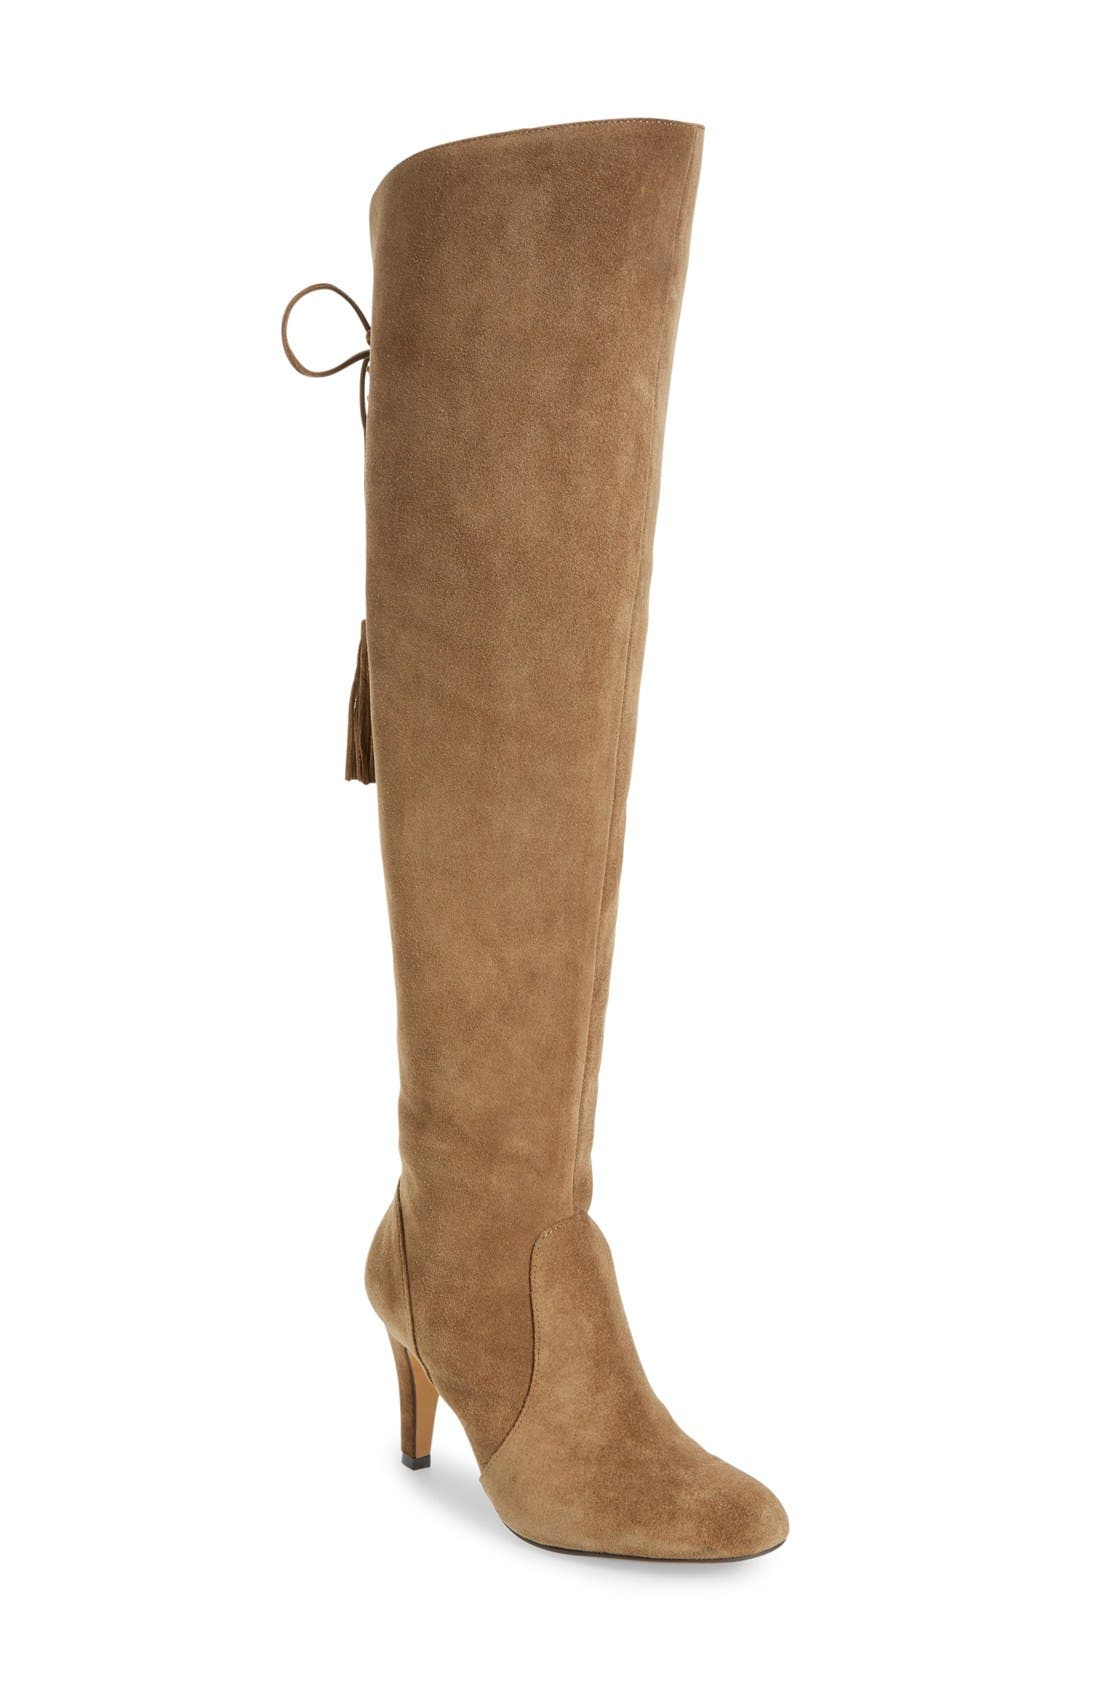 Alternate Image 1 Selected - Vince Camuto Cherline Over the Knee Boot (Women)